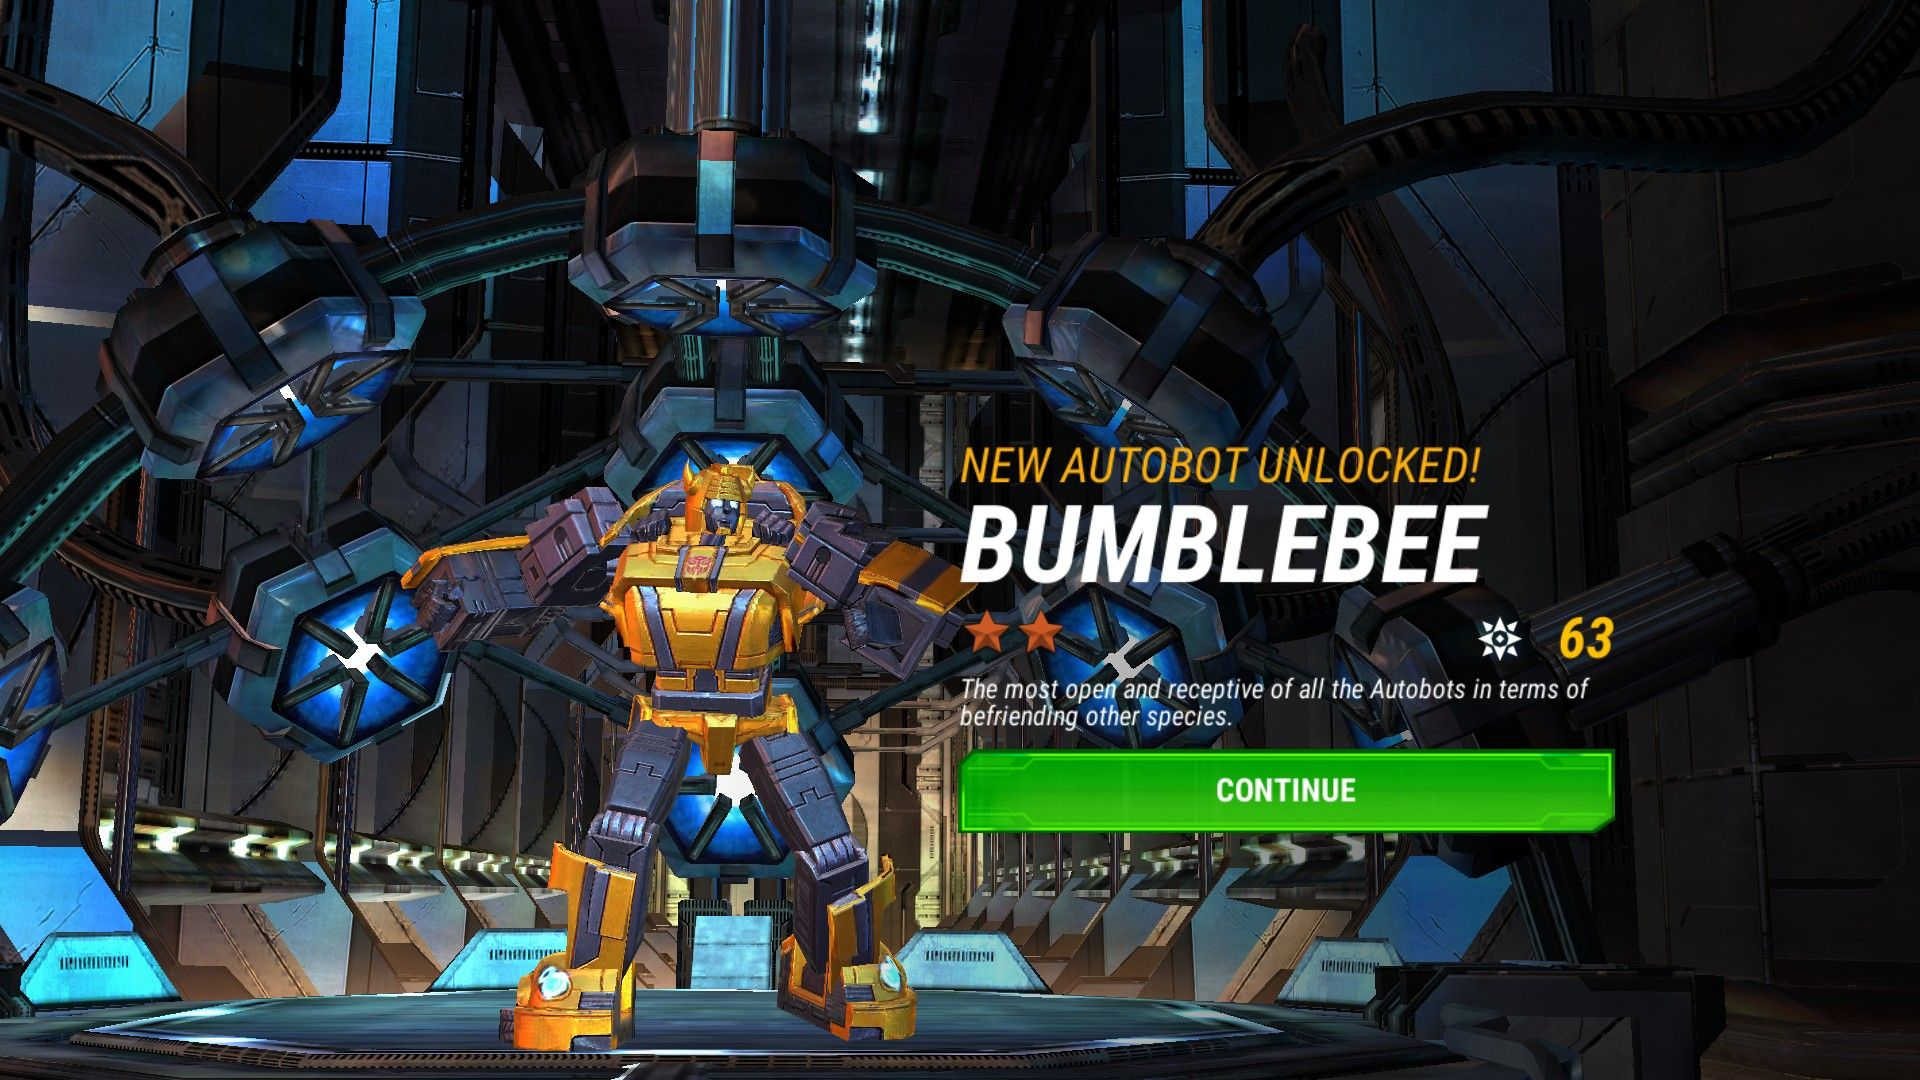 Pin by Paul Michael on Gaming (M) Transformers Earth Wars